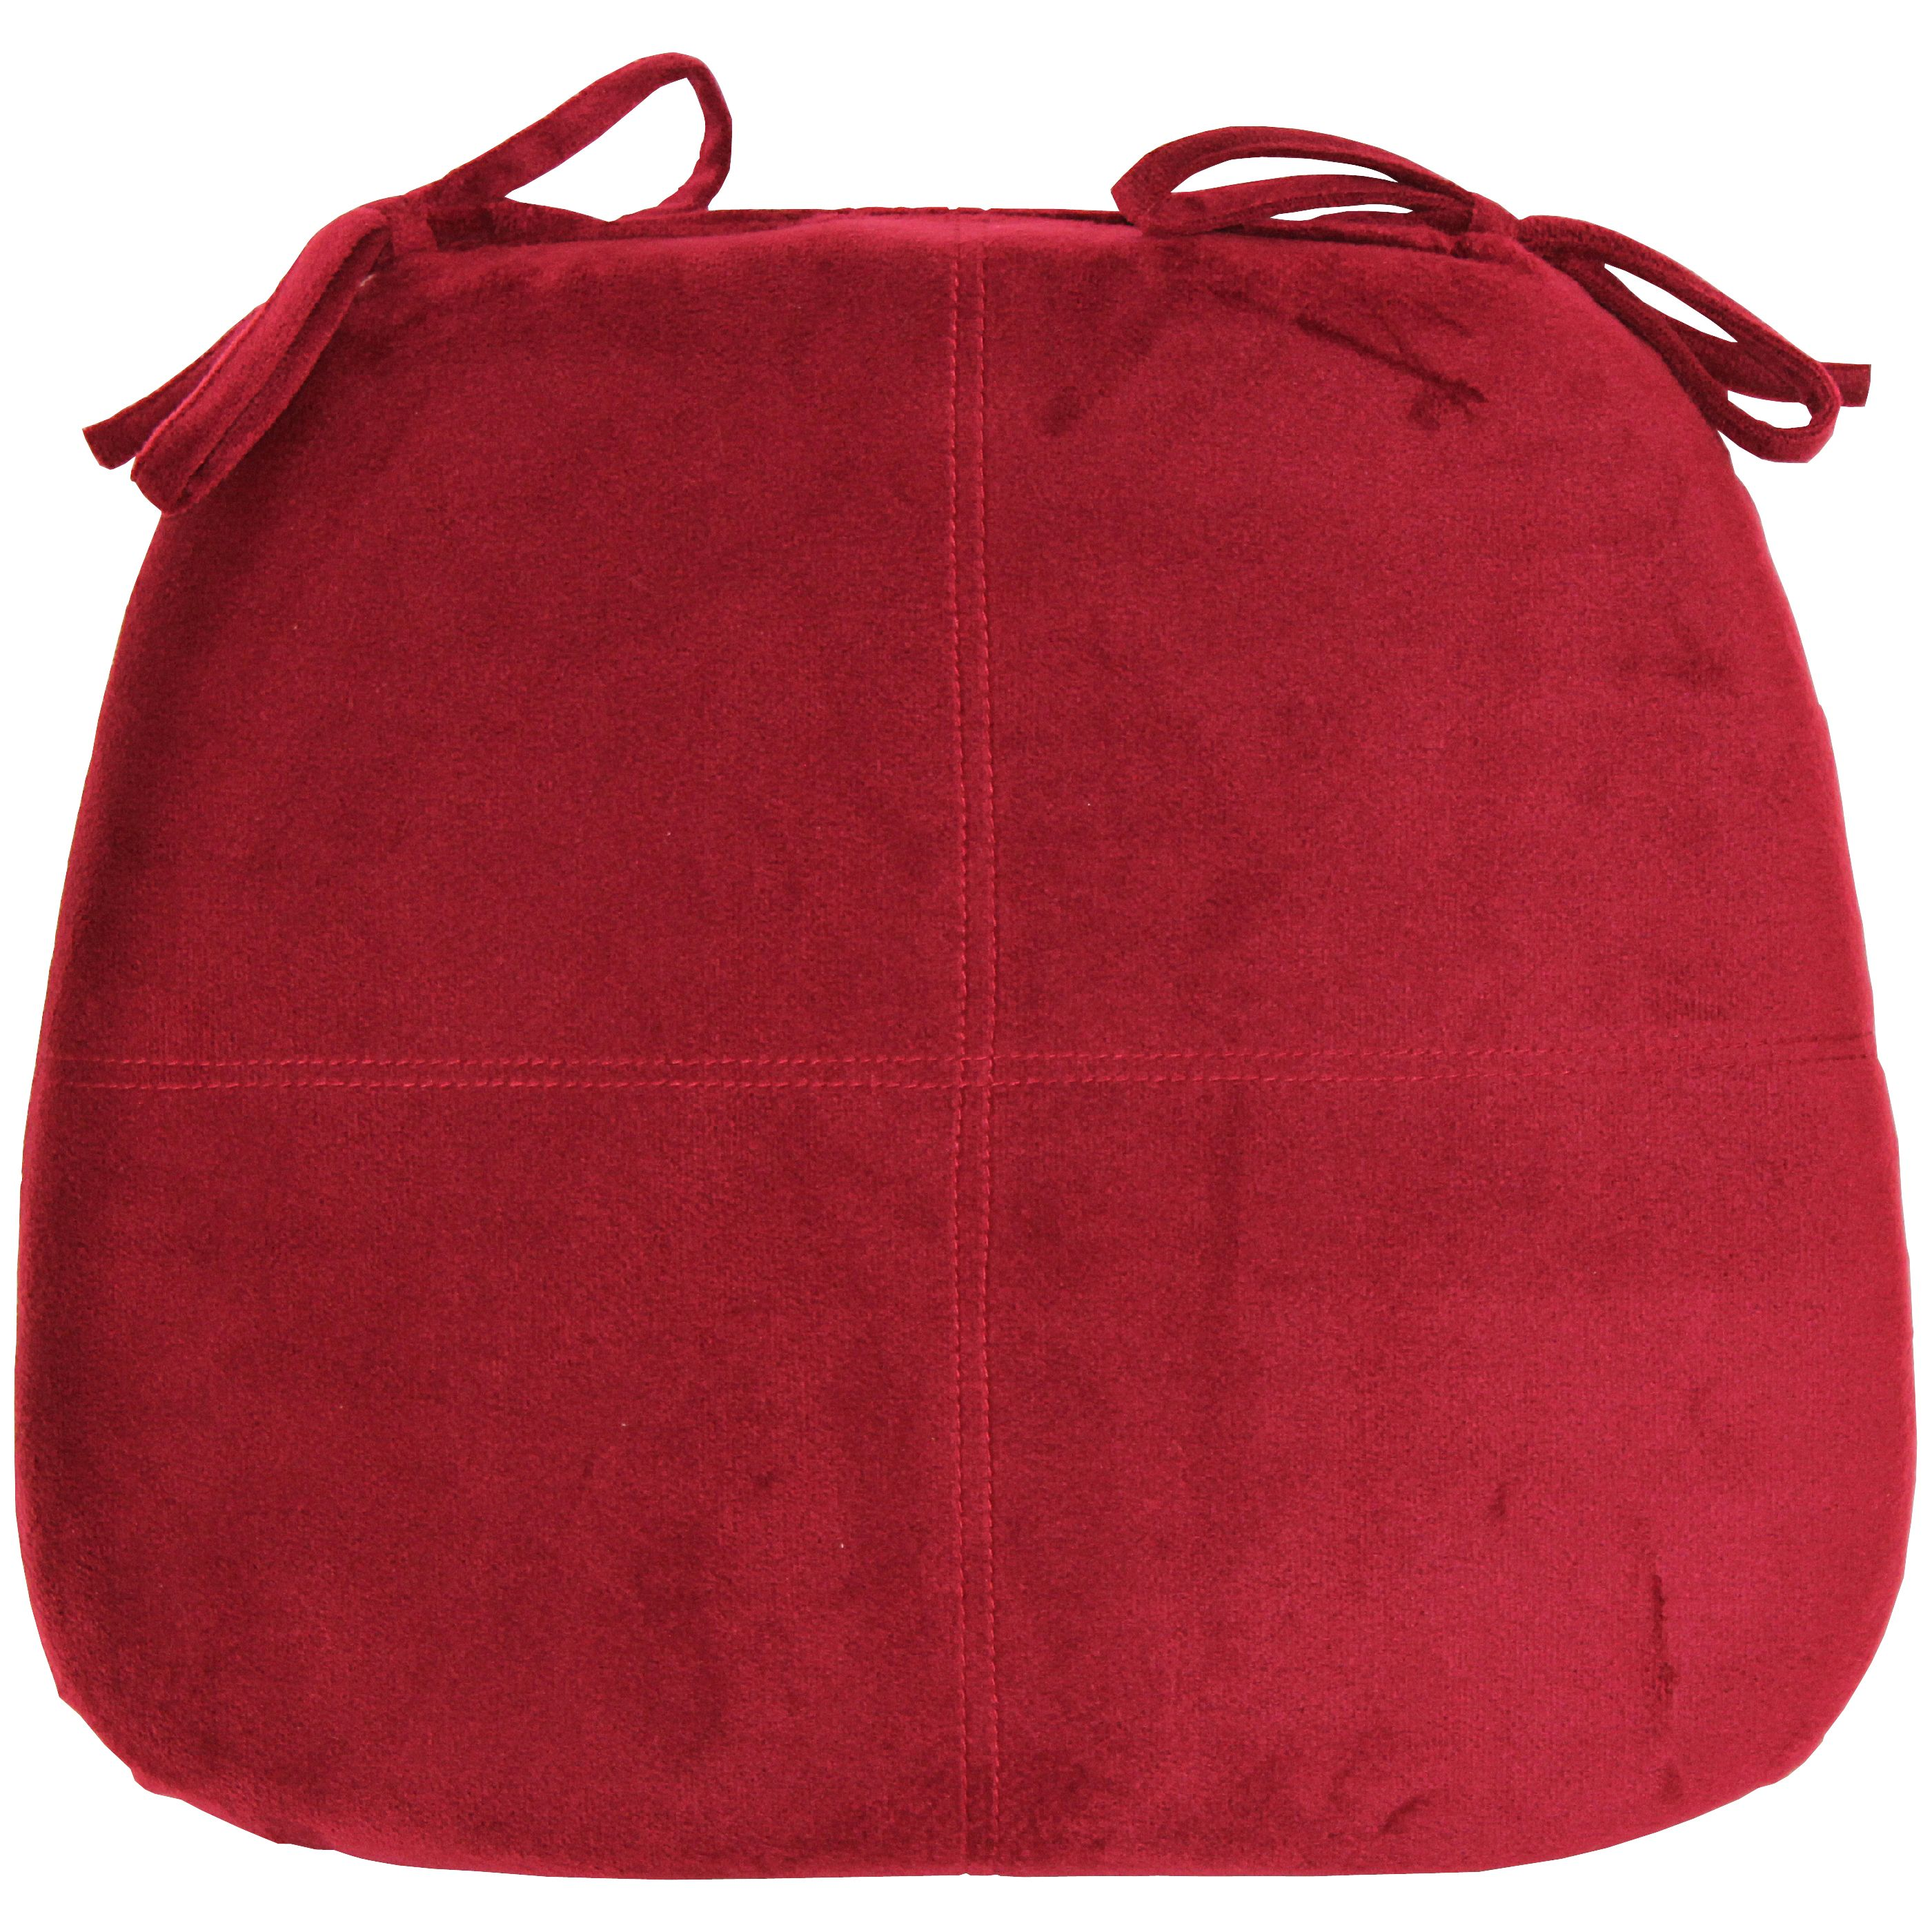 Better Homes and Gardens Memory Foam Chair Pad Red by Brentwood